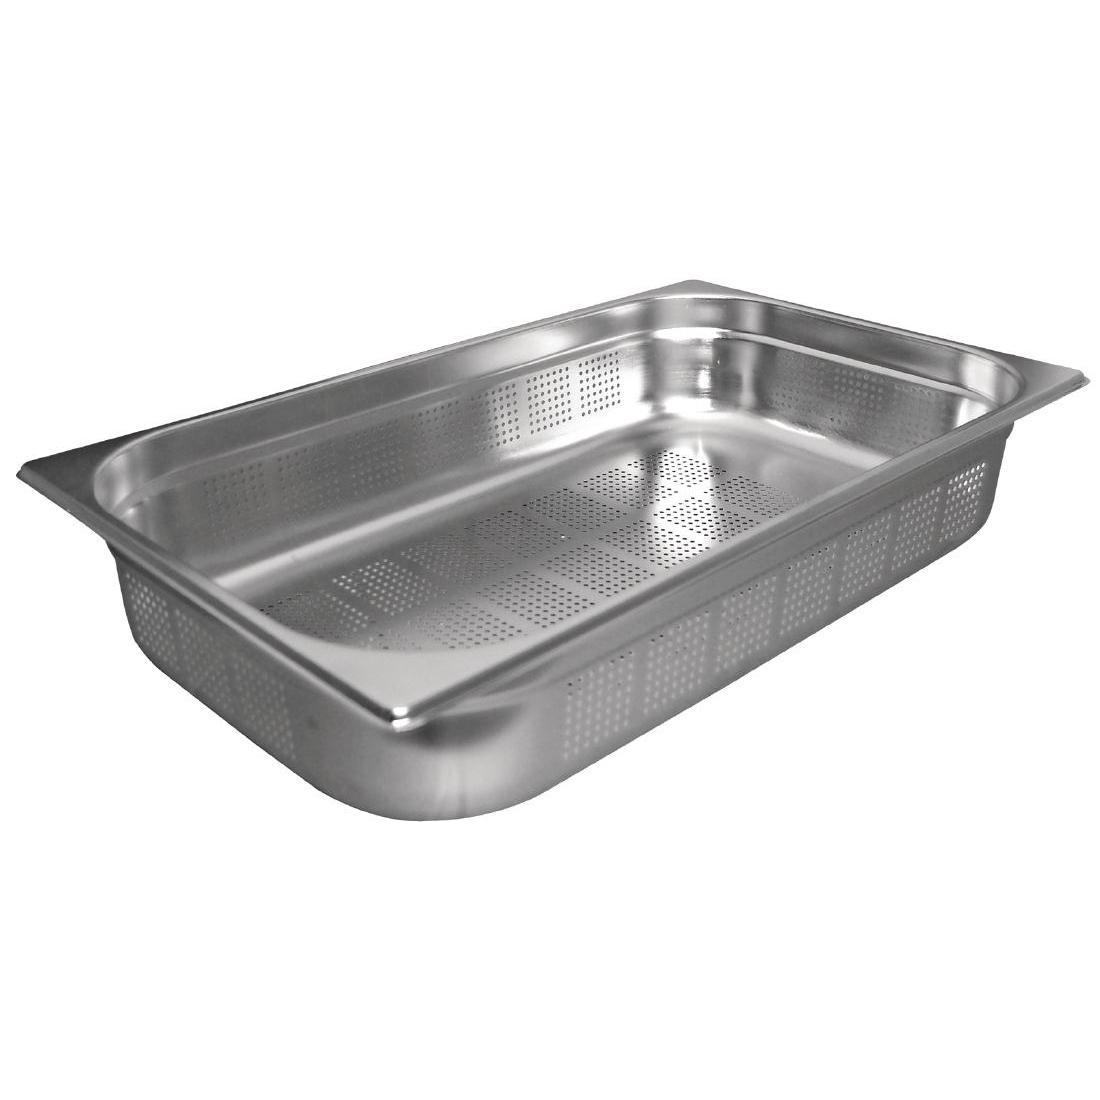 Vogue Stainless Steel Perforated 1/1 Gastronorm Pan 100mm - K841